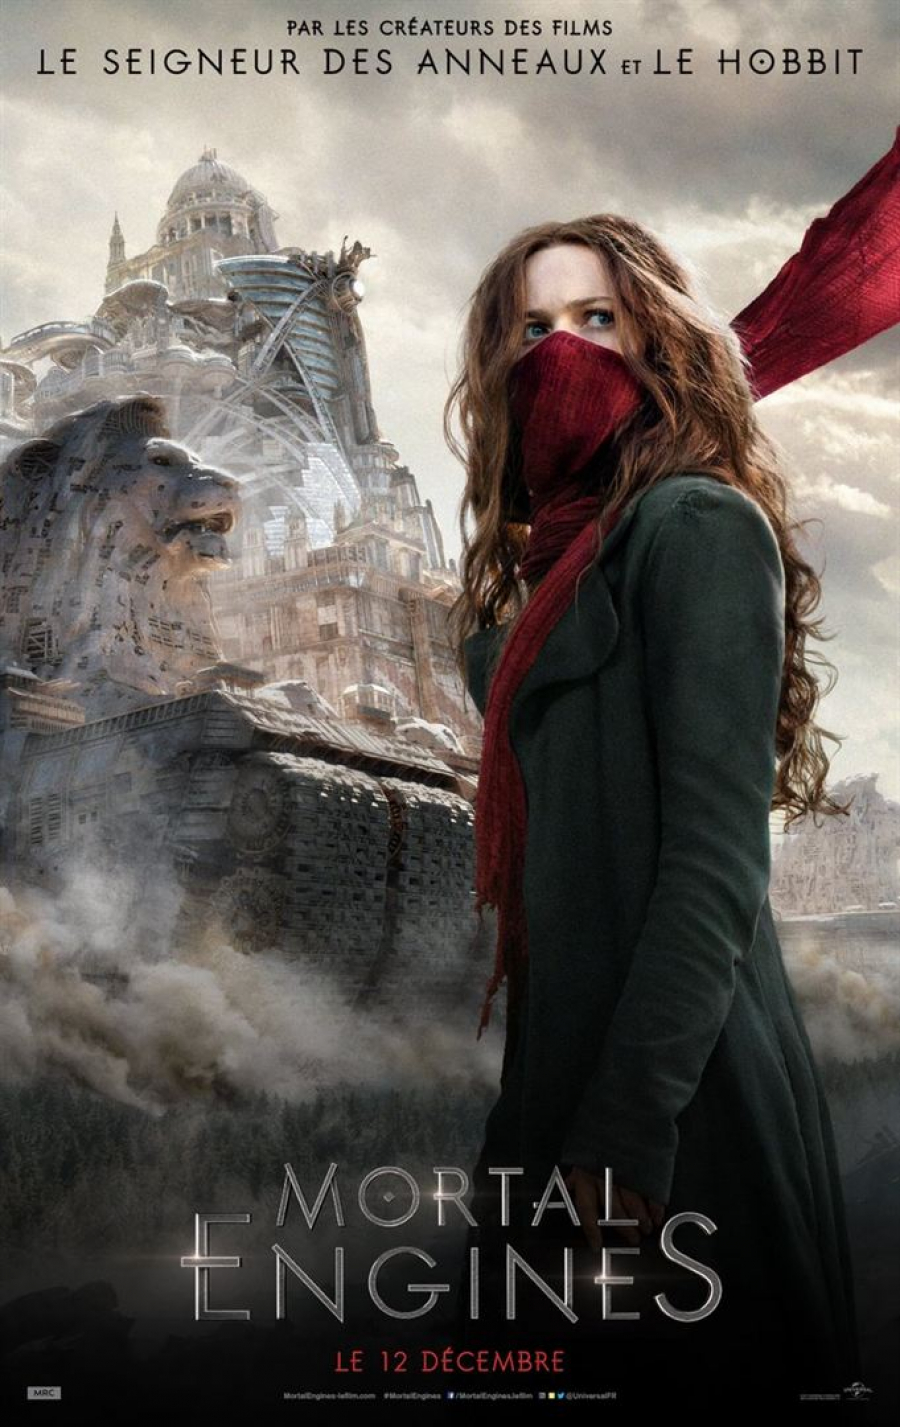 Mortal Engines (2D ou 3D)